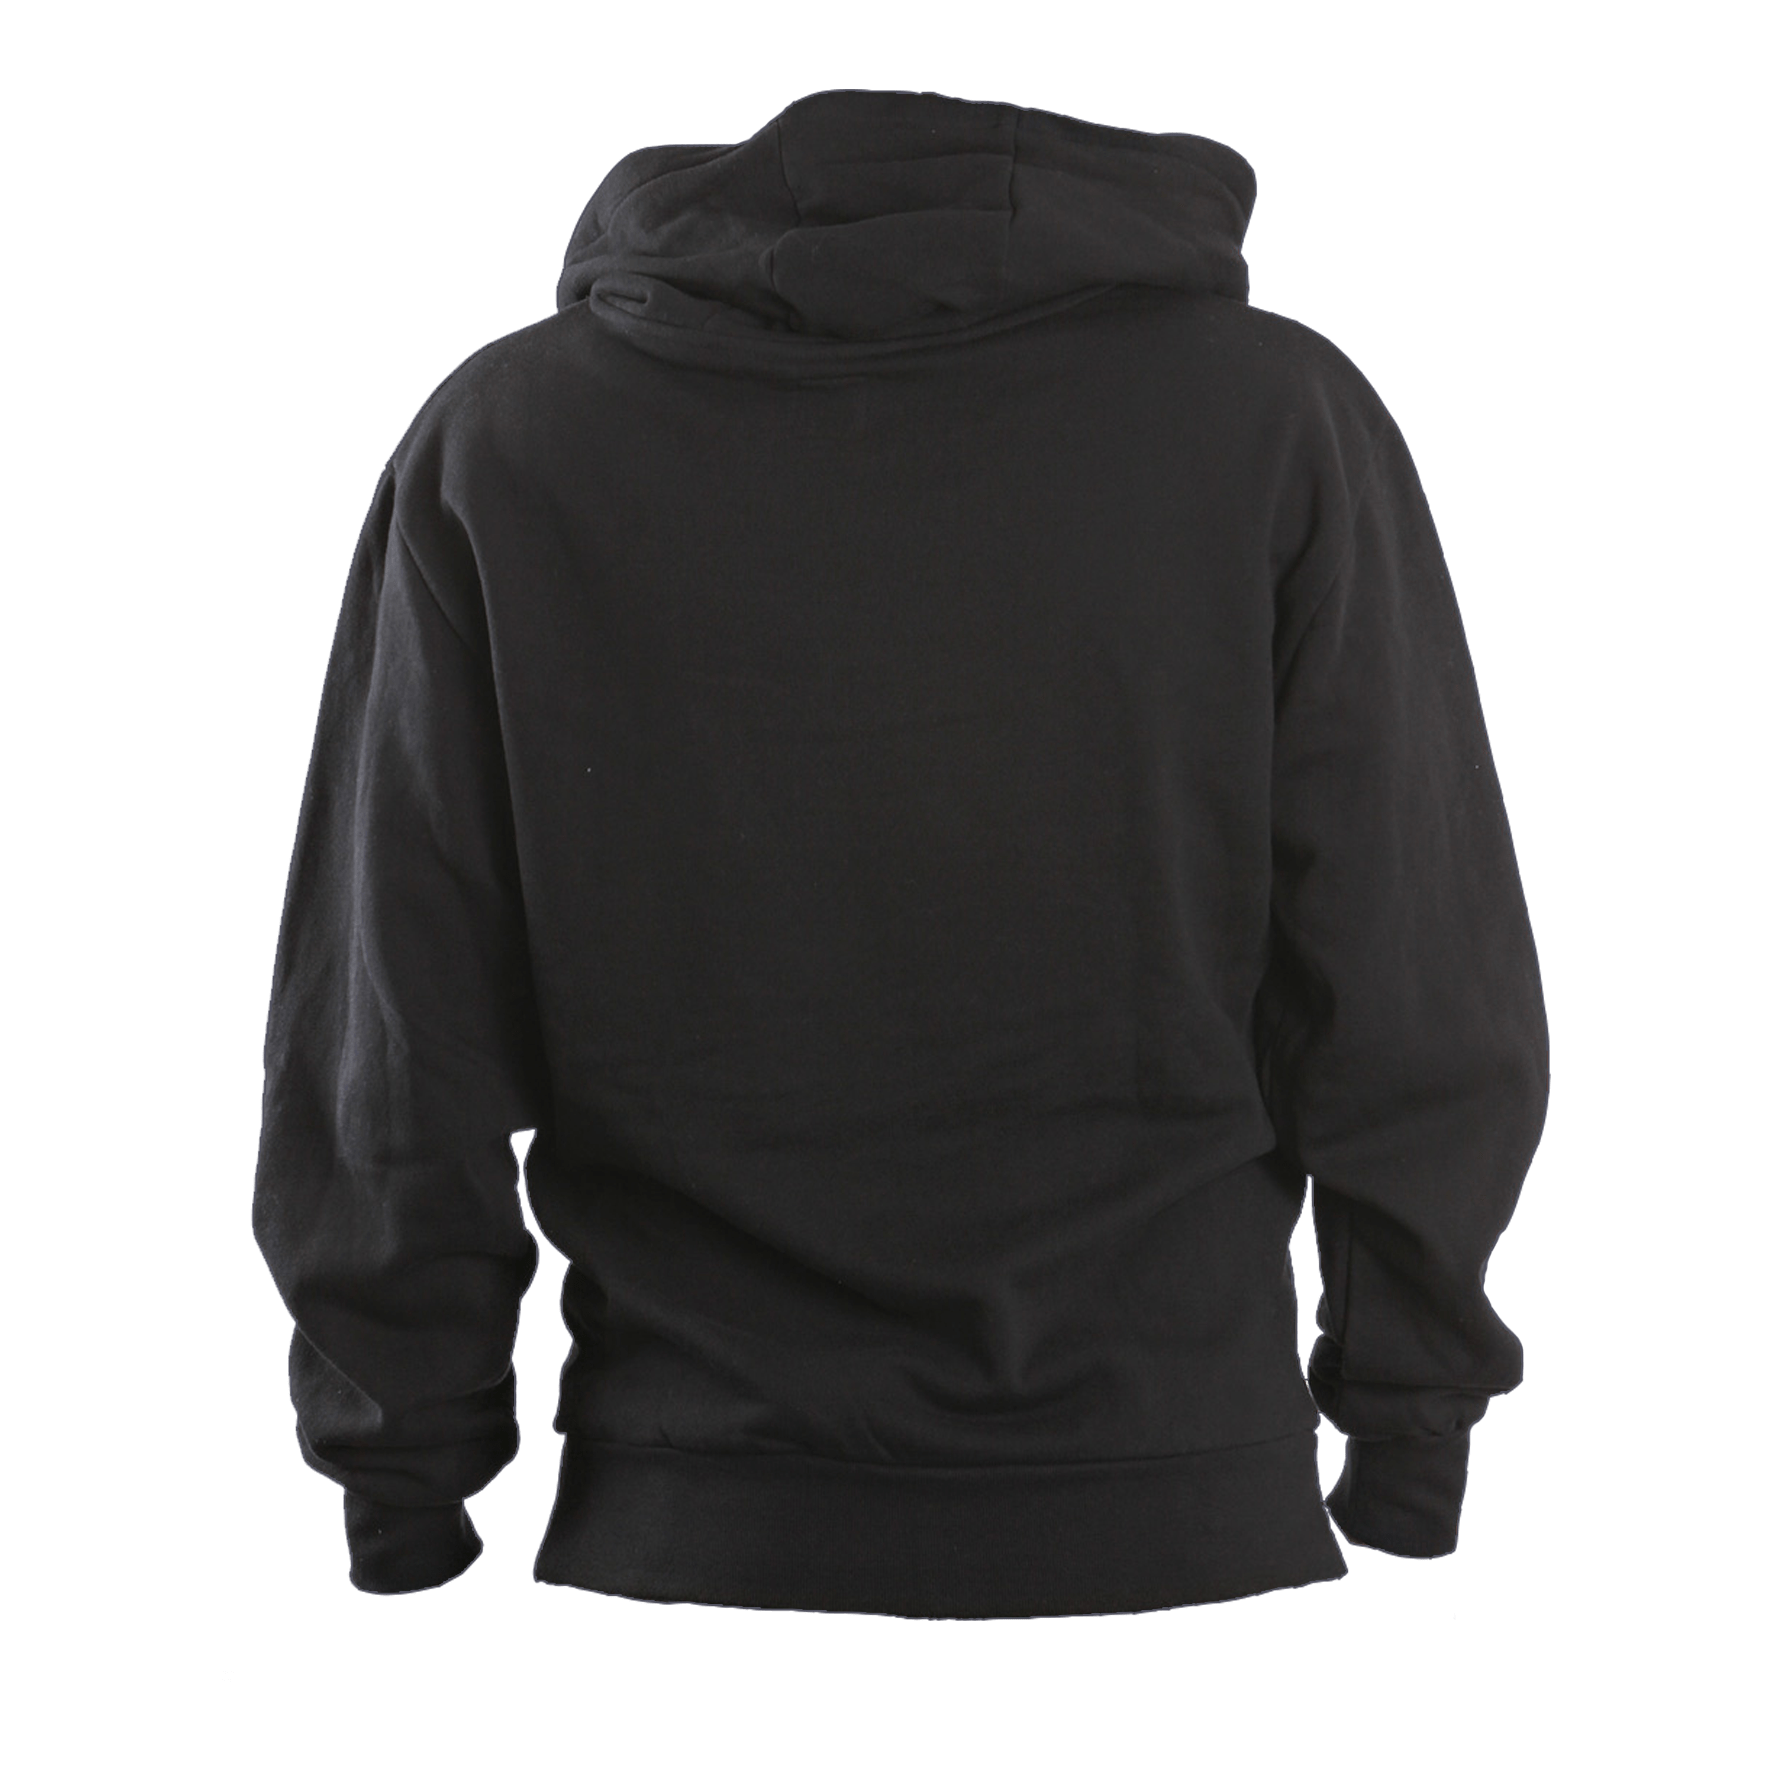 Black hoodie png. Hoodies transparent images stickpng